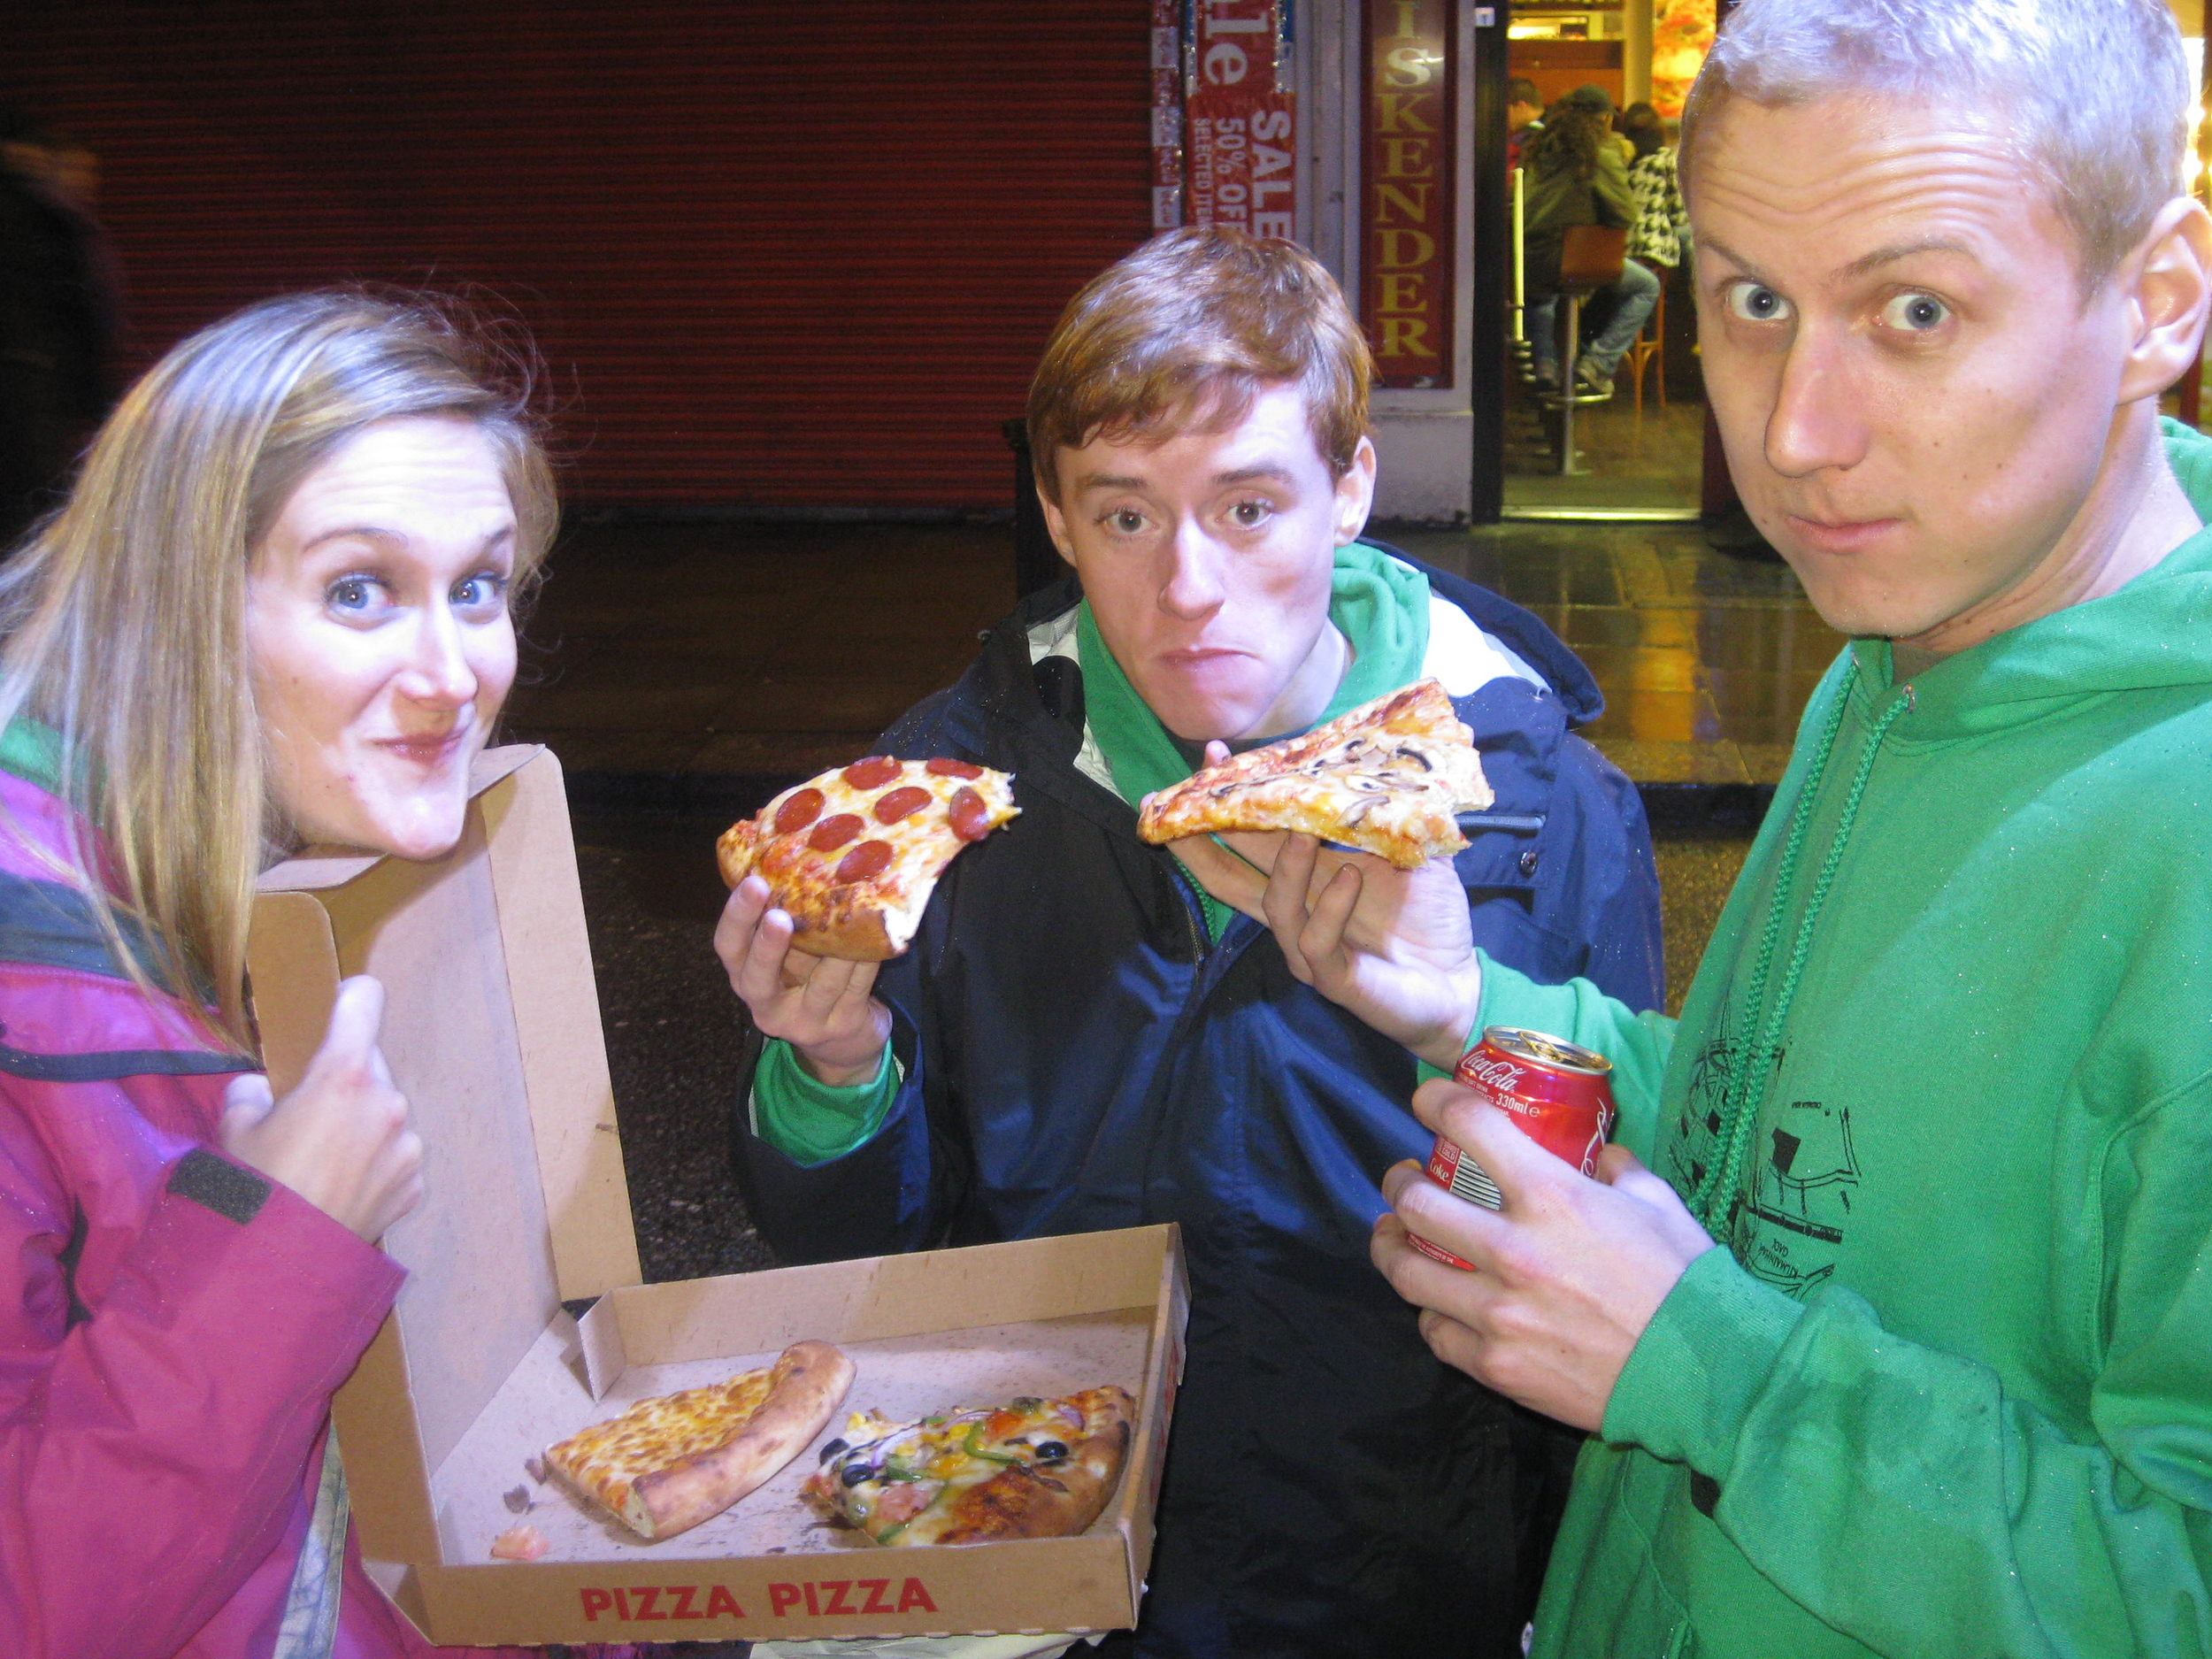 Best Pizza of my life! (Alcohol was not a factor in this assessment ;) )